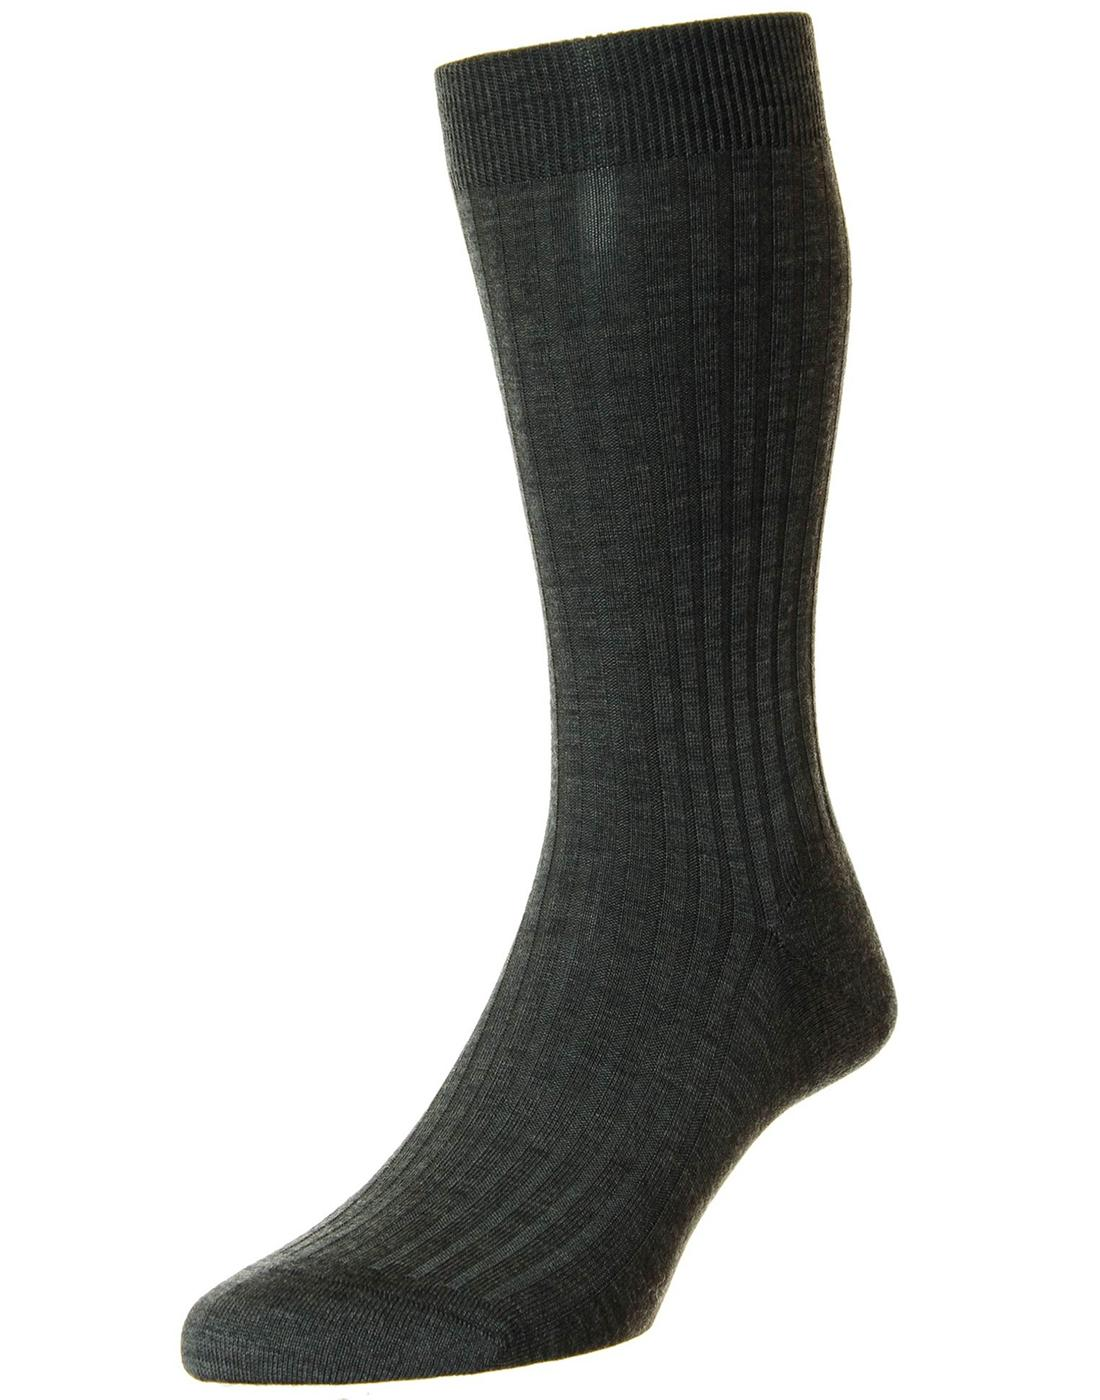 + PANTHERELLA Retro Mod Plain Knit Ribbed Socks DG